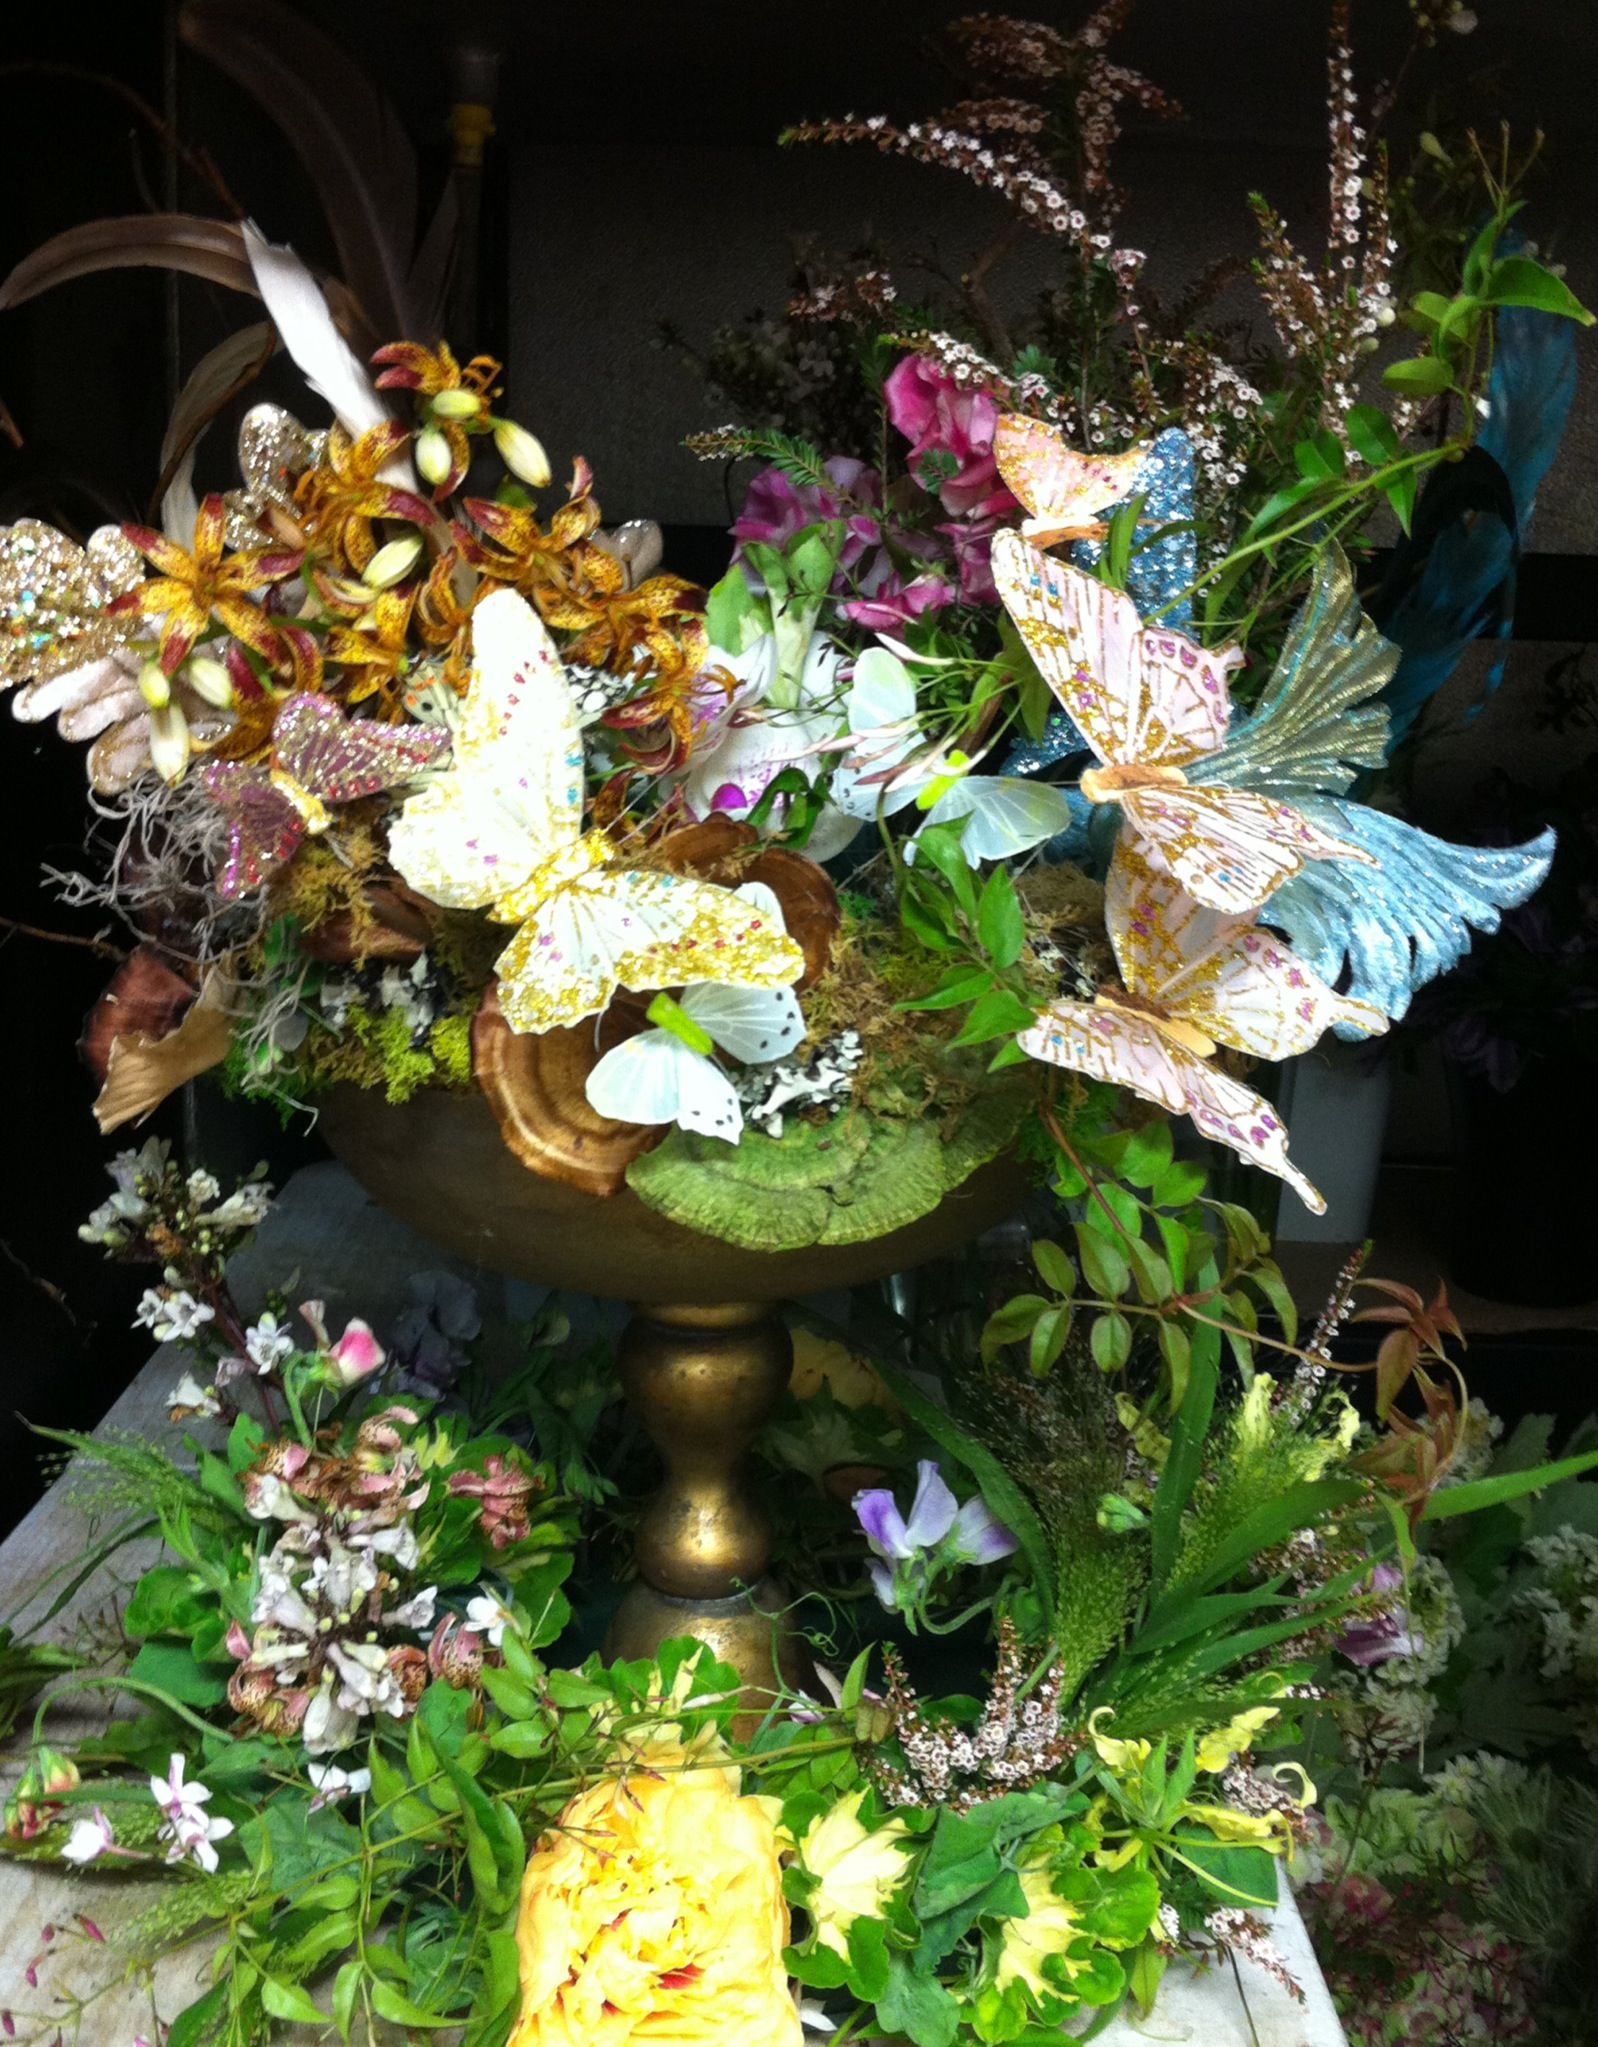 Midsummer nights dream theme party centerpiece a whimsical fairy ...